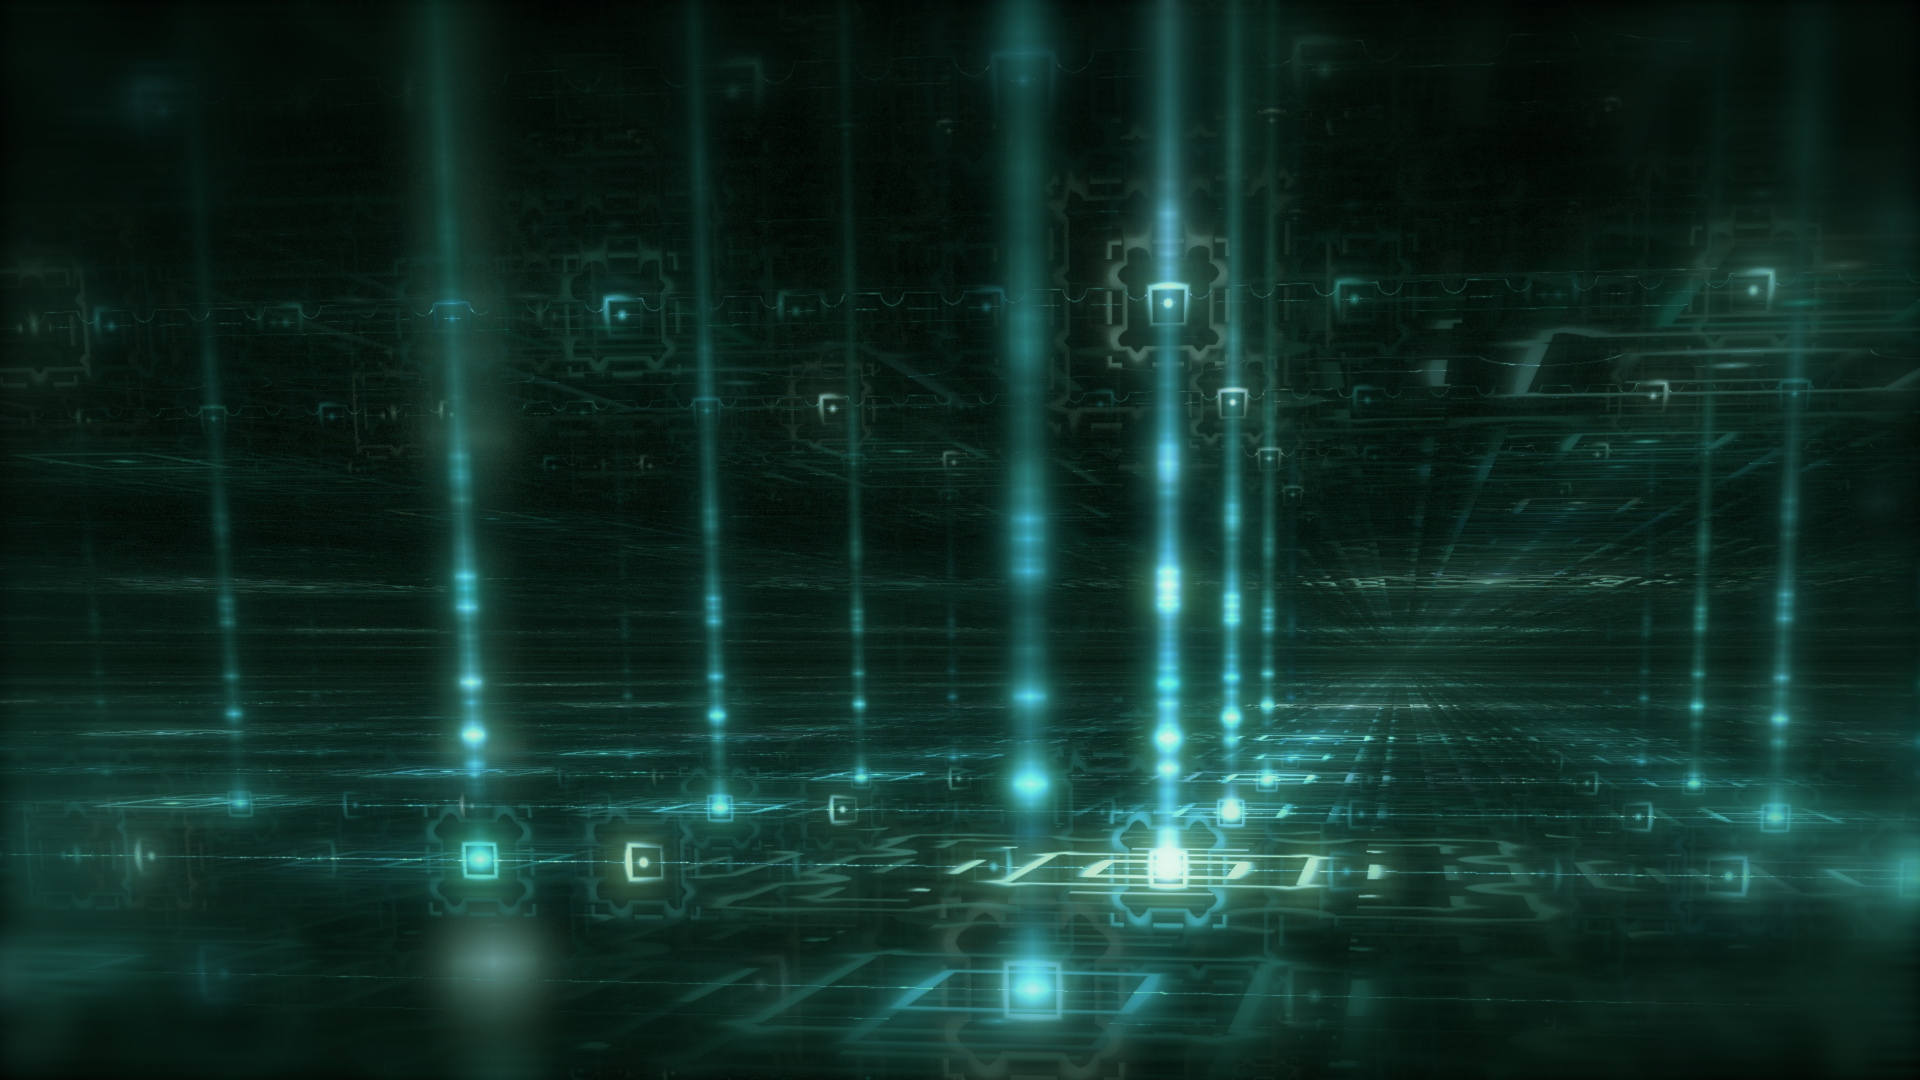 Matrix Abstract Wallpaper